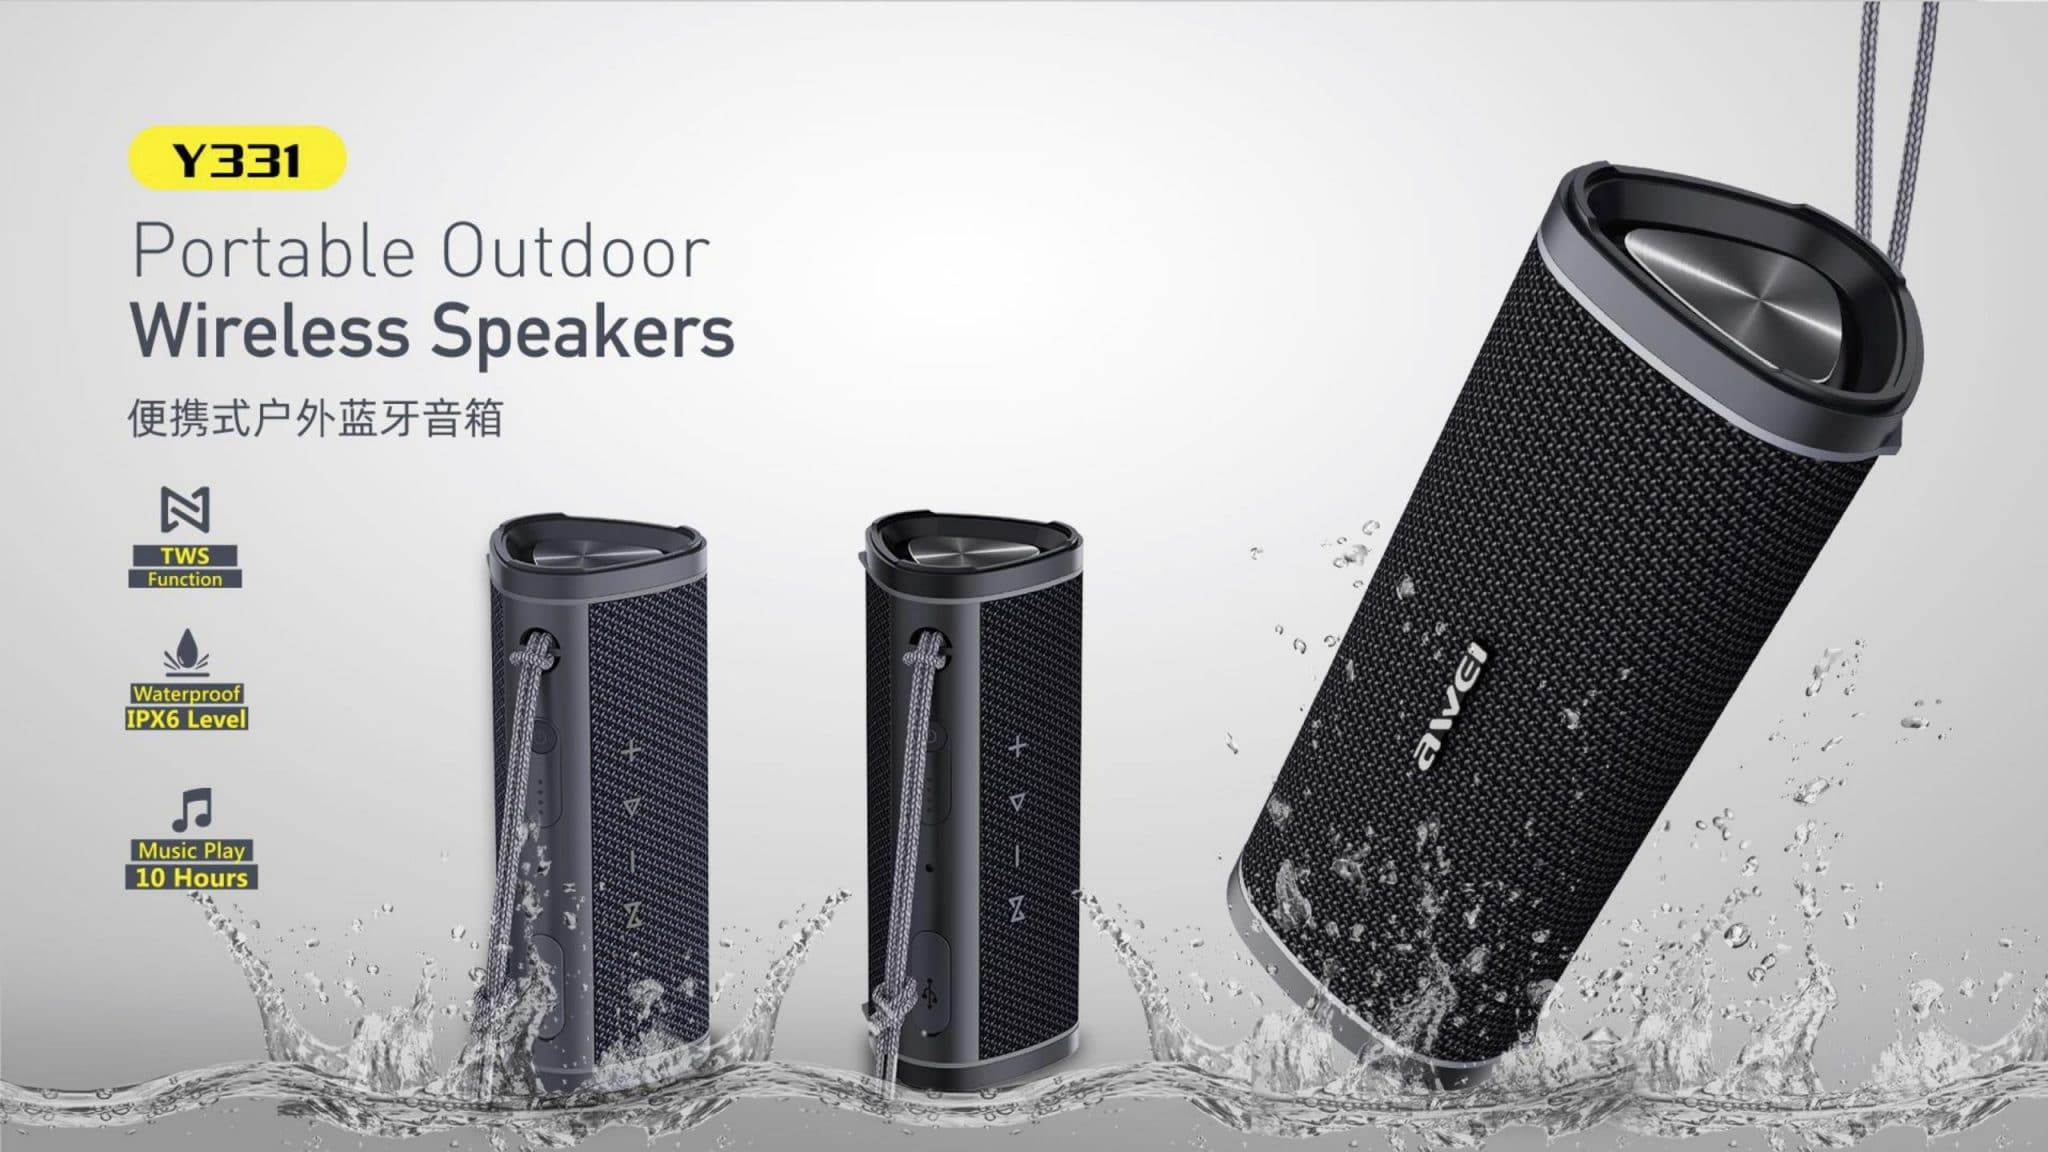 Awei Portable Outdoor Wireless Speakers Y331